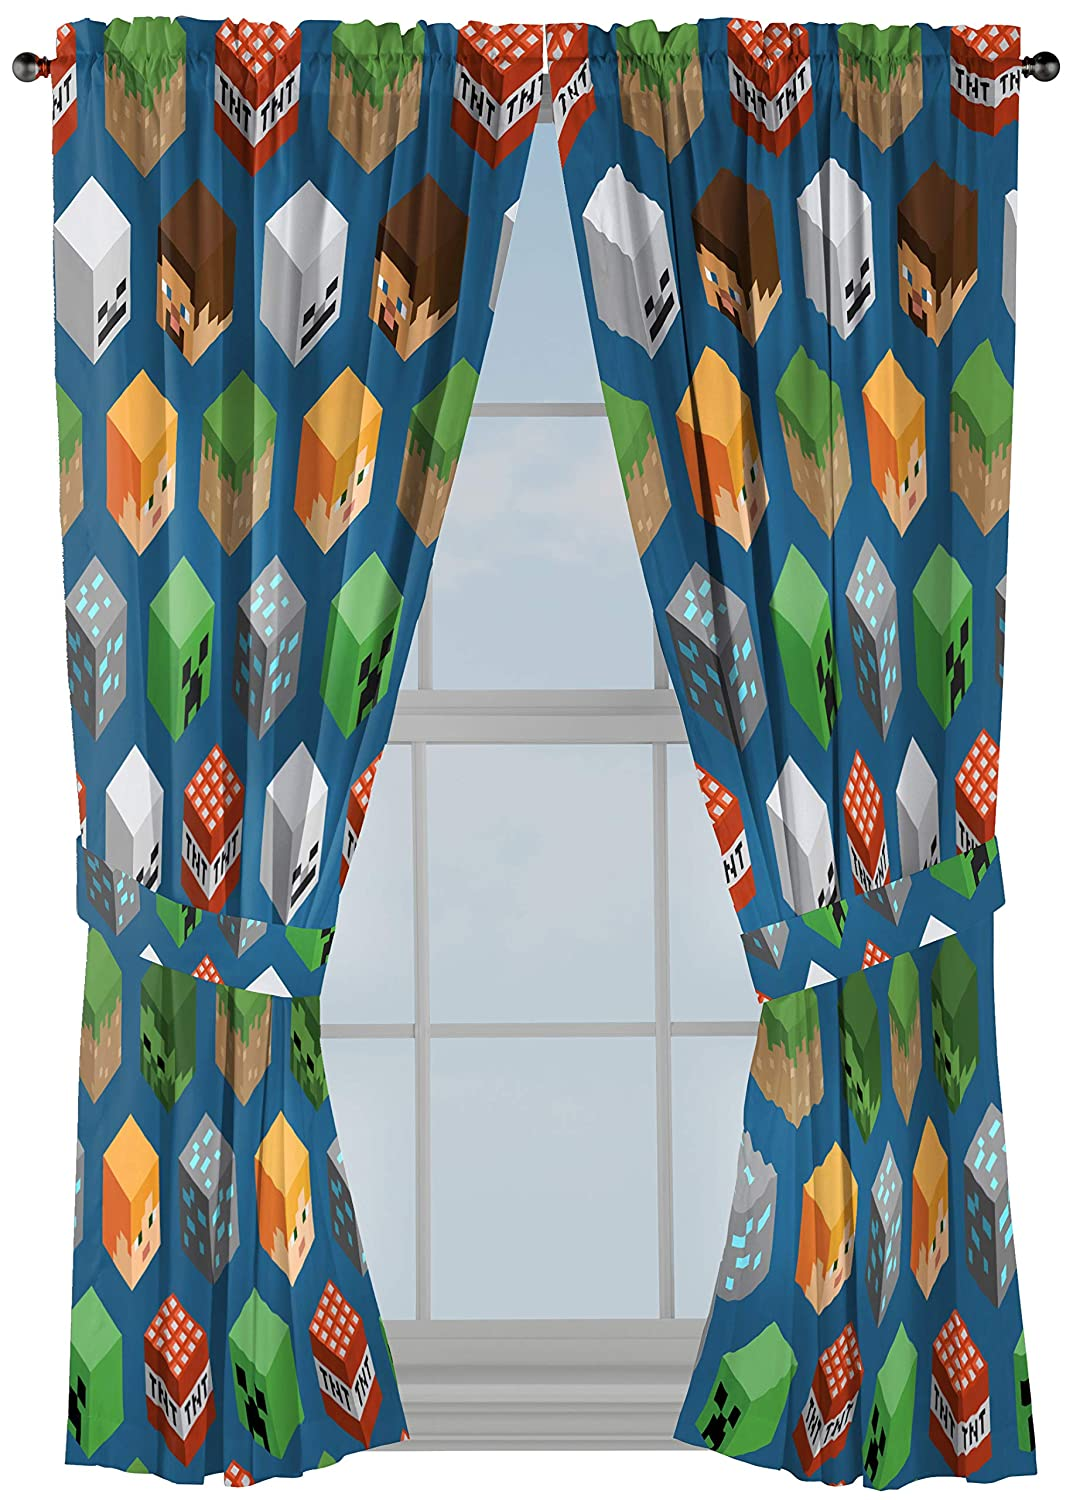 """Minecraft Isometric Blue 63"""" Inch Drapes 4 Piece Set - Beautiful Room Décor & Easy Set Up, Bedding Features Creeper - Window Curtains Include 2 Panels & 2 Tiebacks (Official Minecraft Product)"""